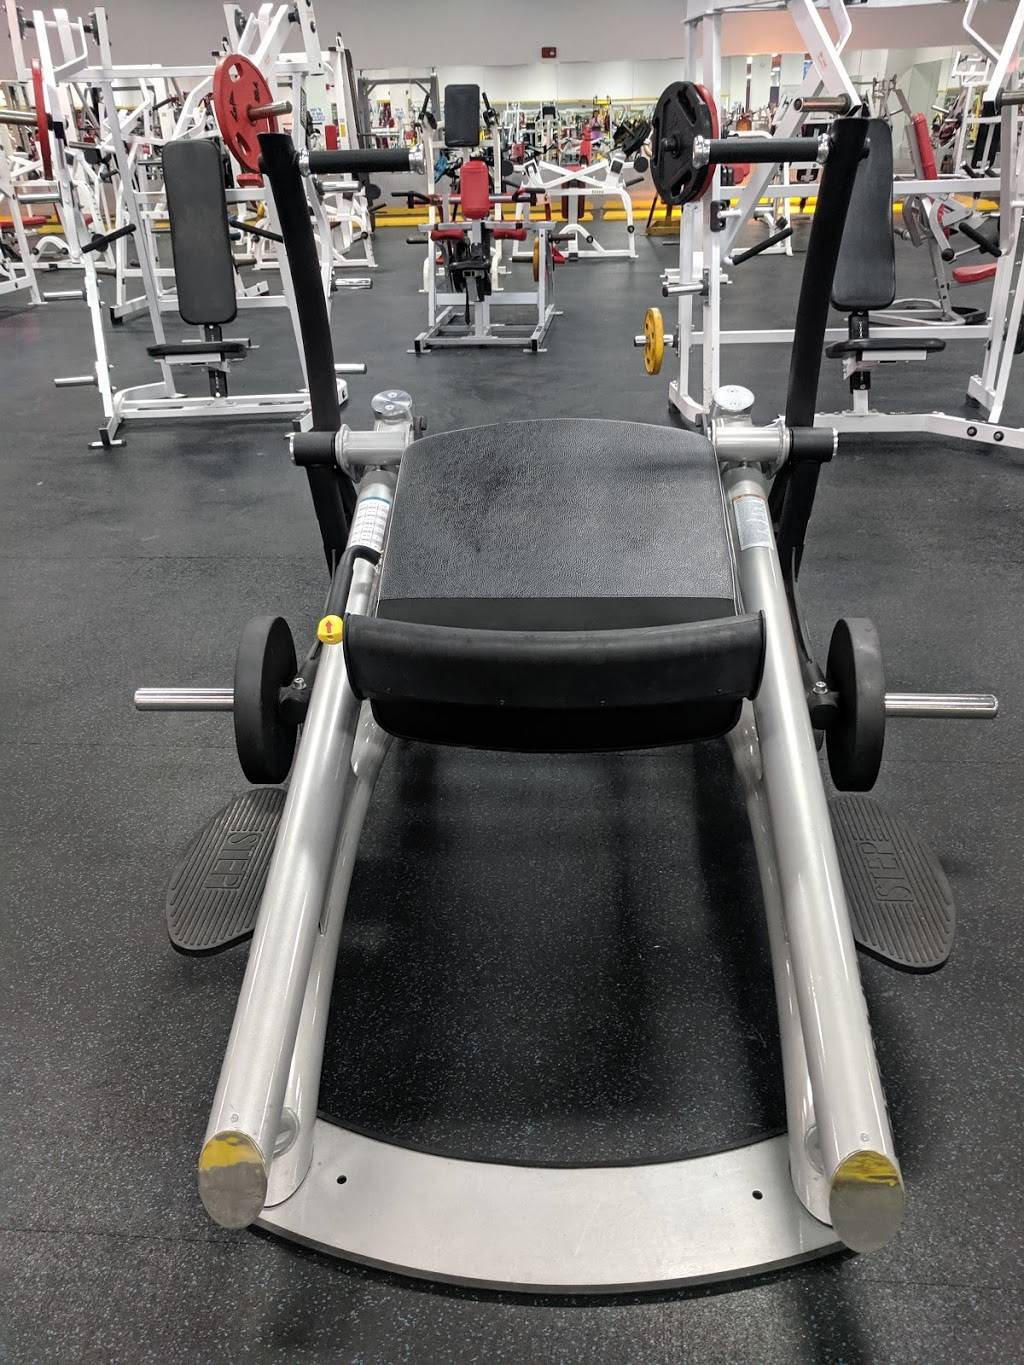 Super Fitness Center 343 New Towne Square Dr Toledo Oh 43612 Usa